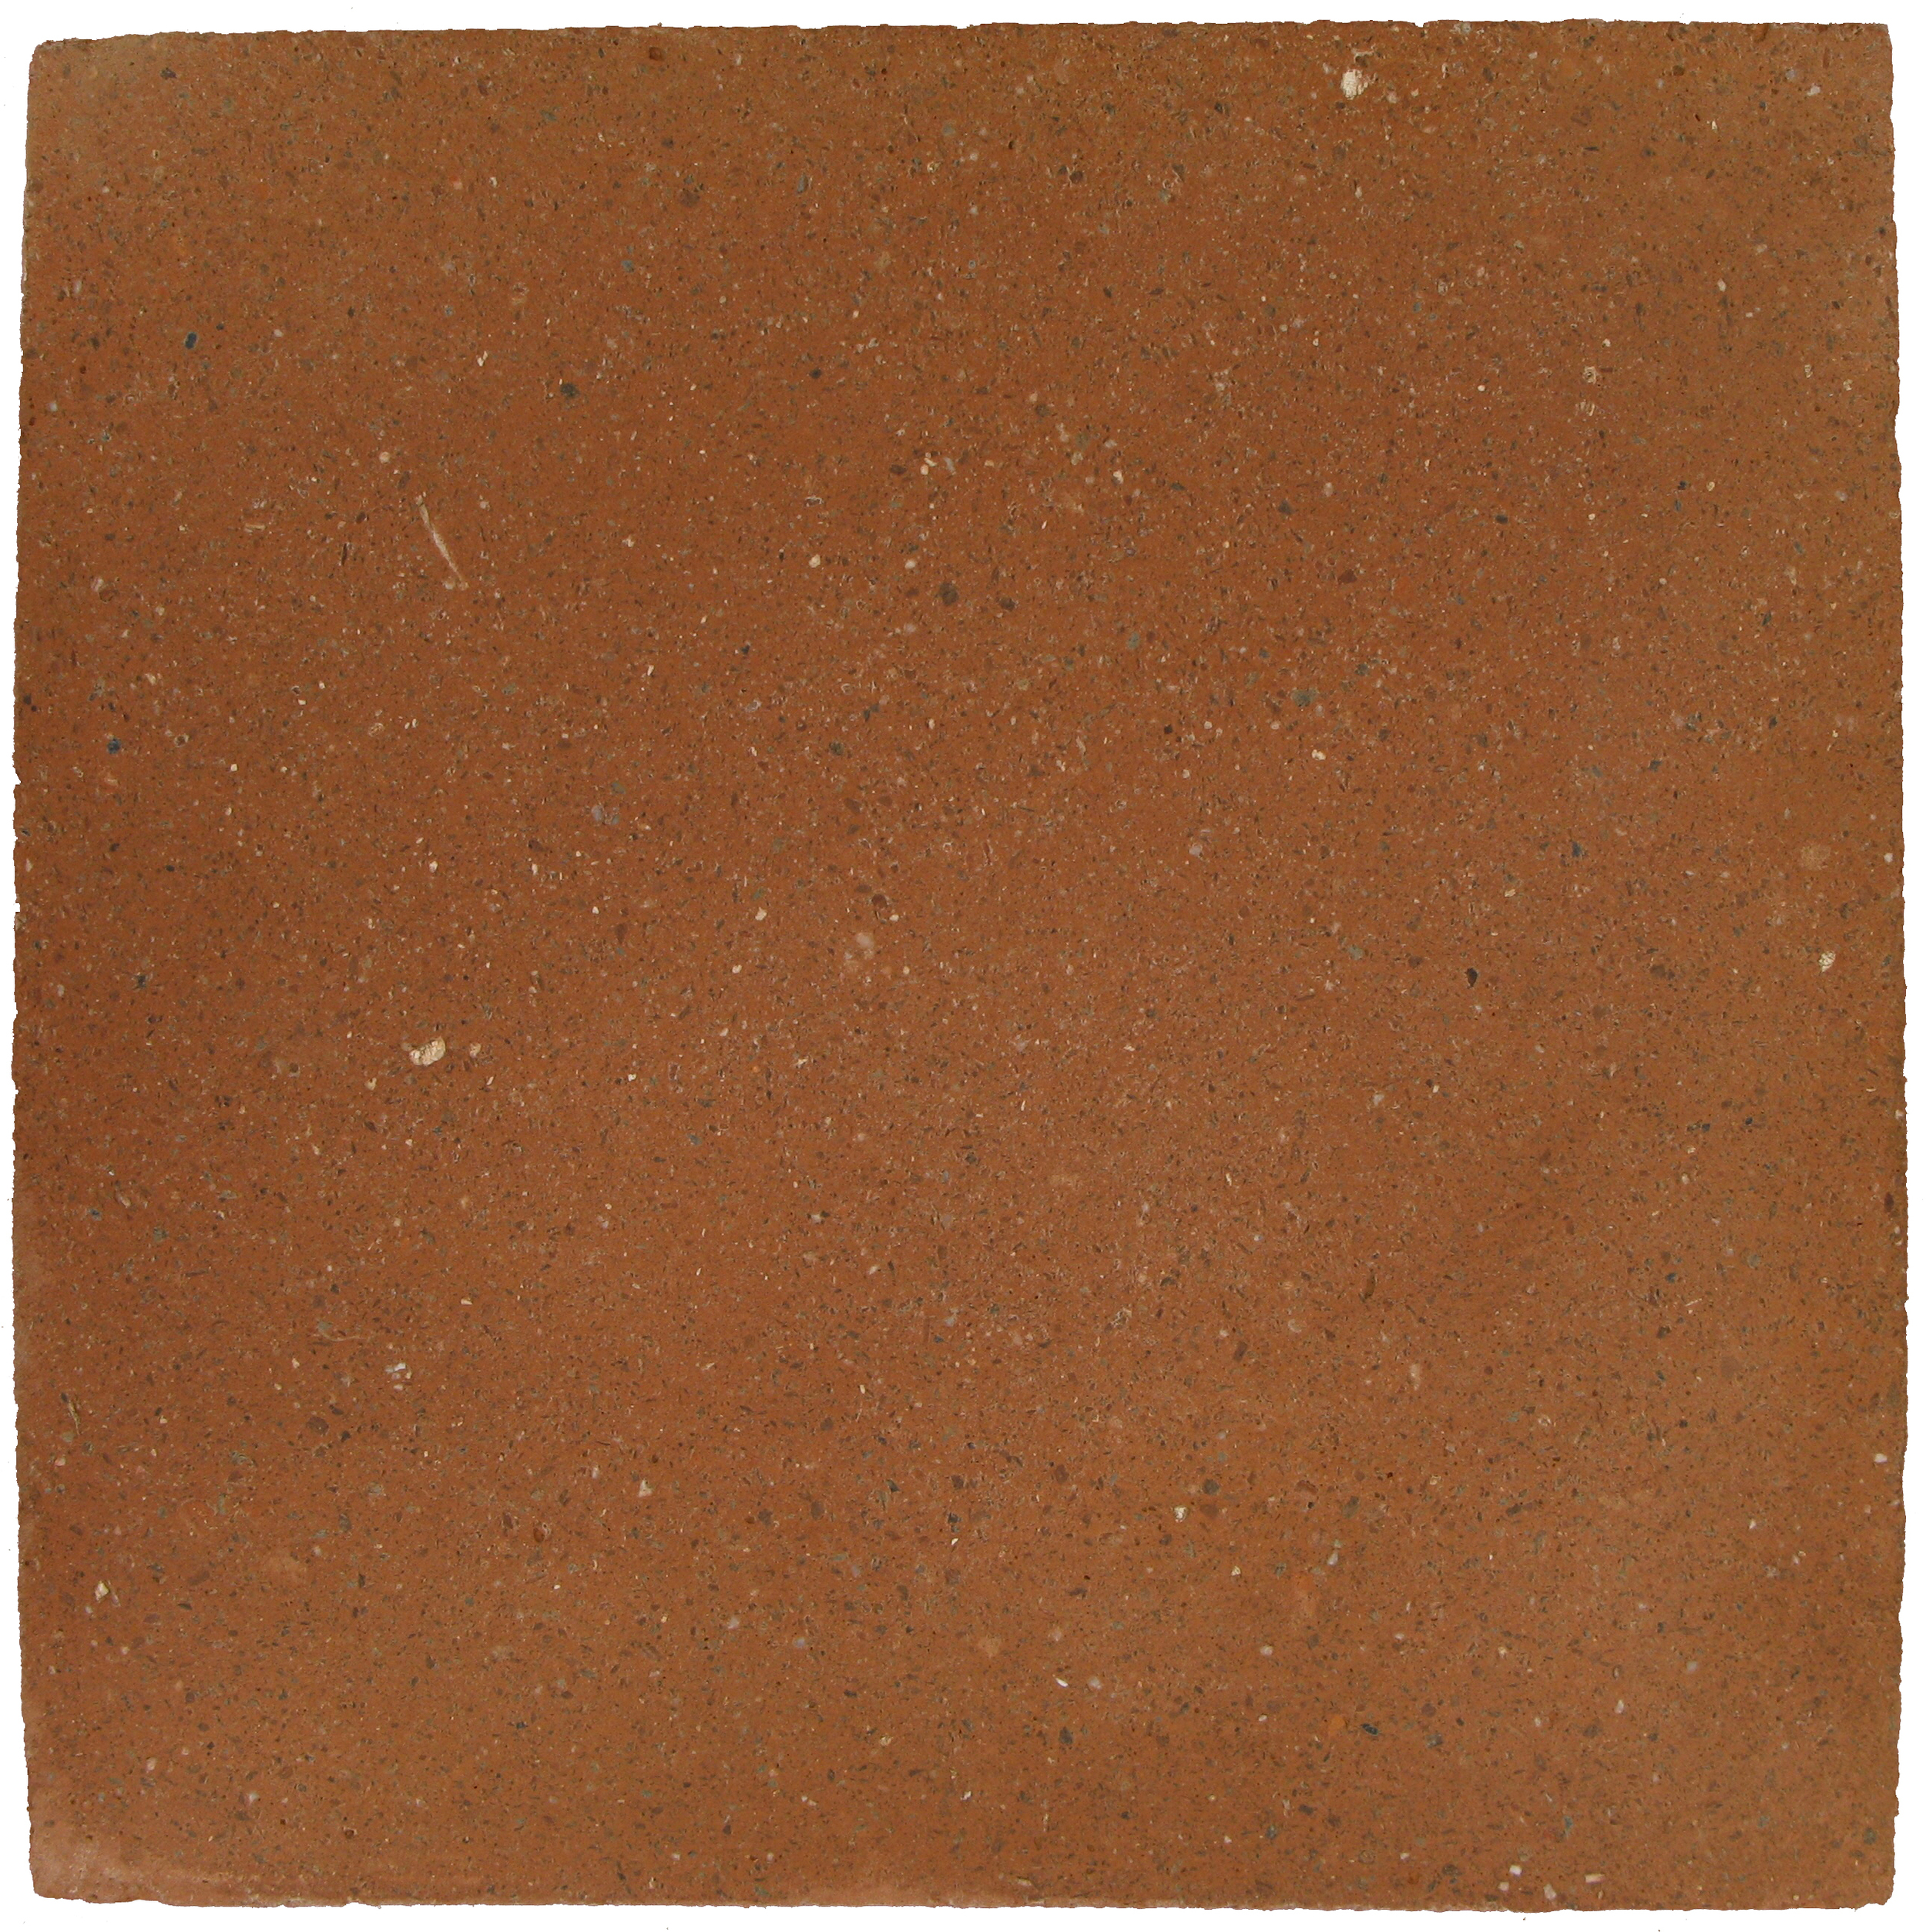 TOSCANA Terracotta & Marble  Terracotta: Cotto PRATO  Color/Finish: Old Patina ANTIQUE(TCPA)